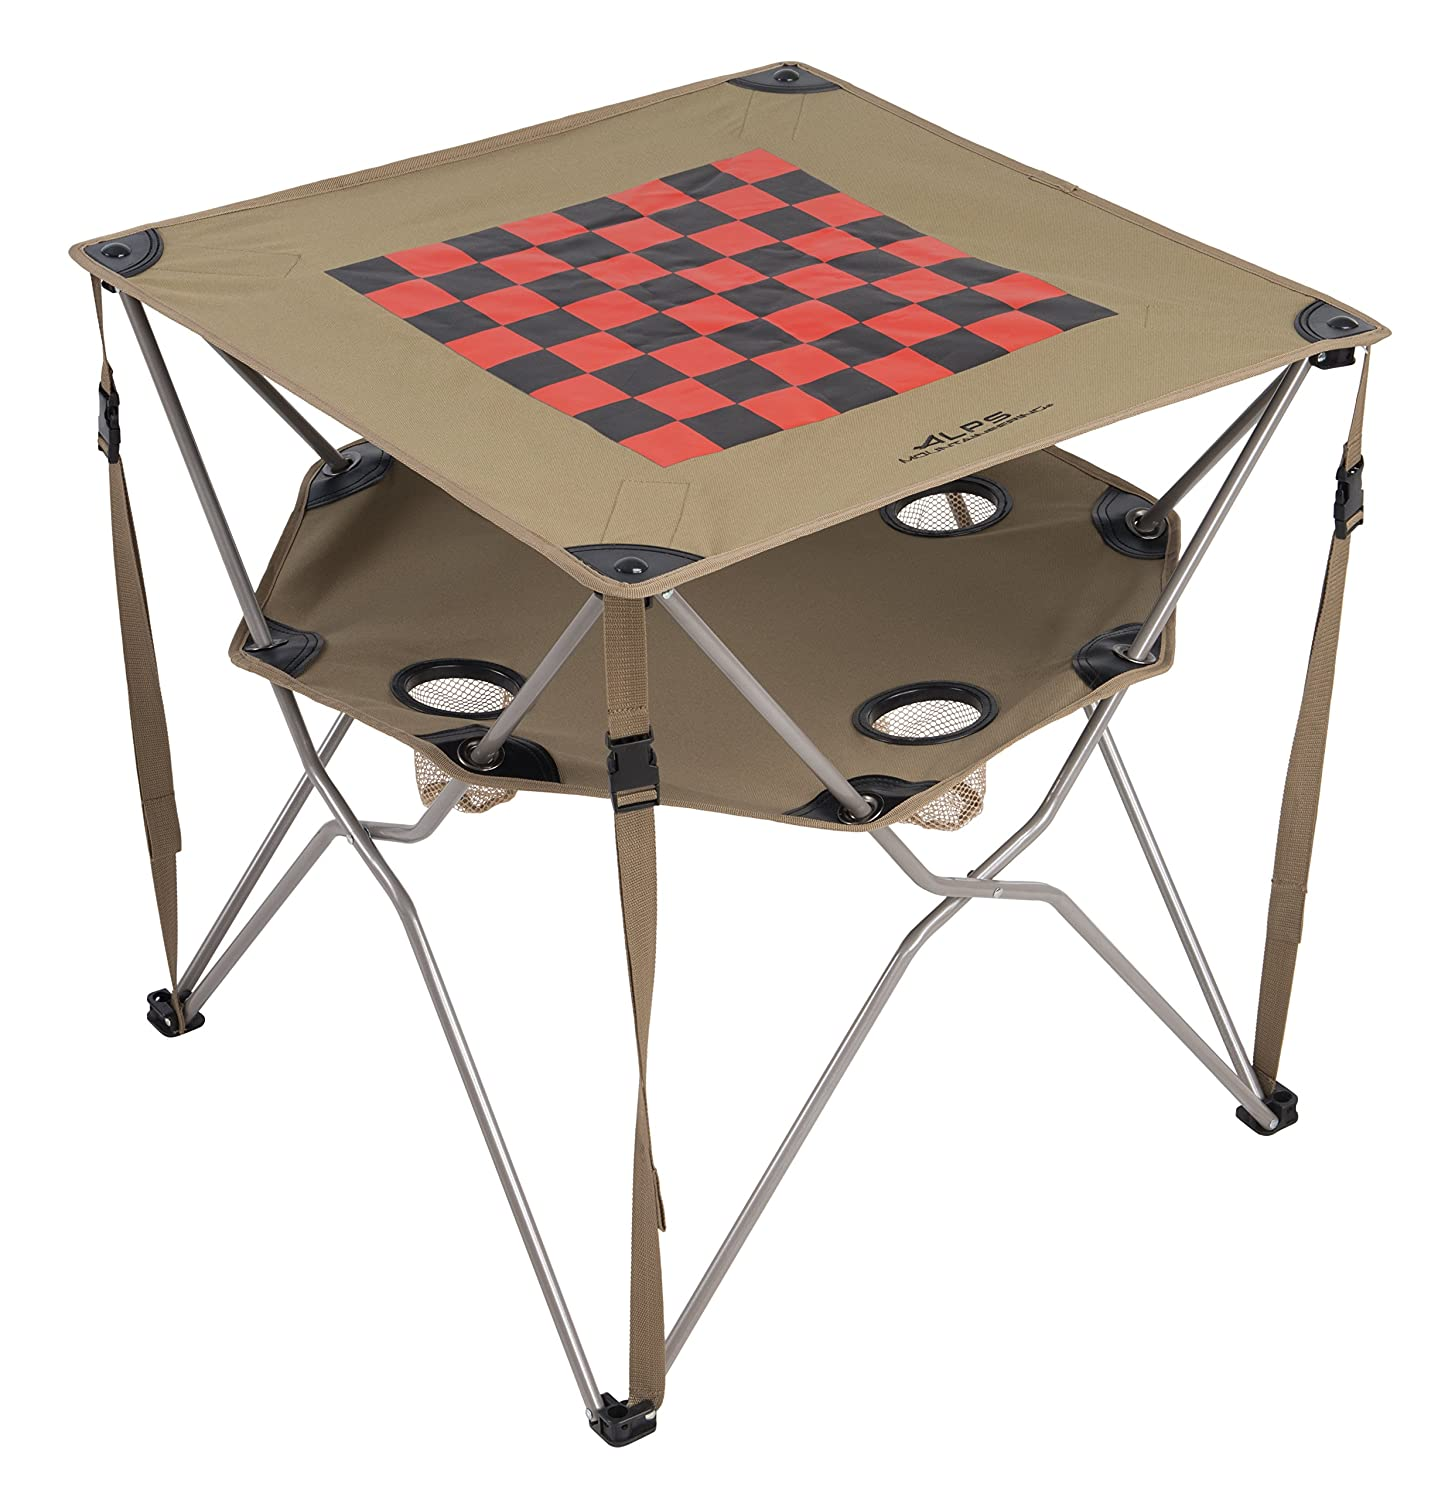 Alpes Alpinisme Eclipse Table (Plusieurs Couleurs) Homme Checker Board Alps Mountaineering 8360114